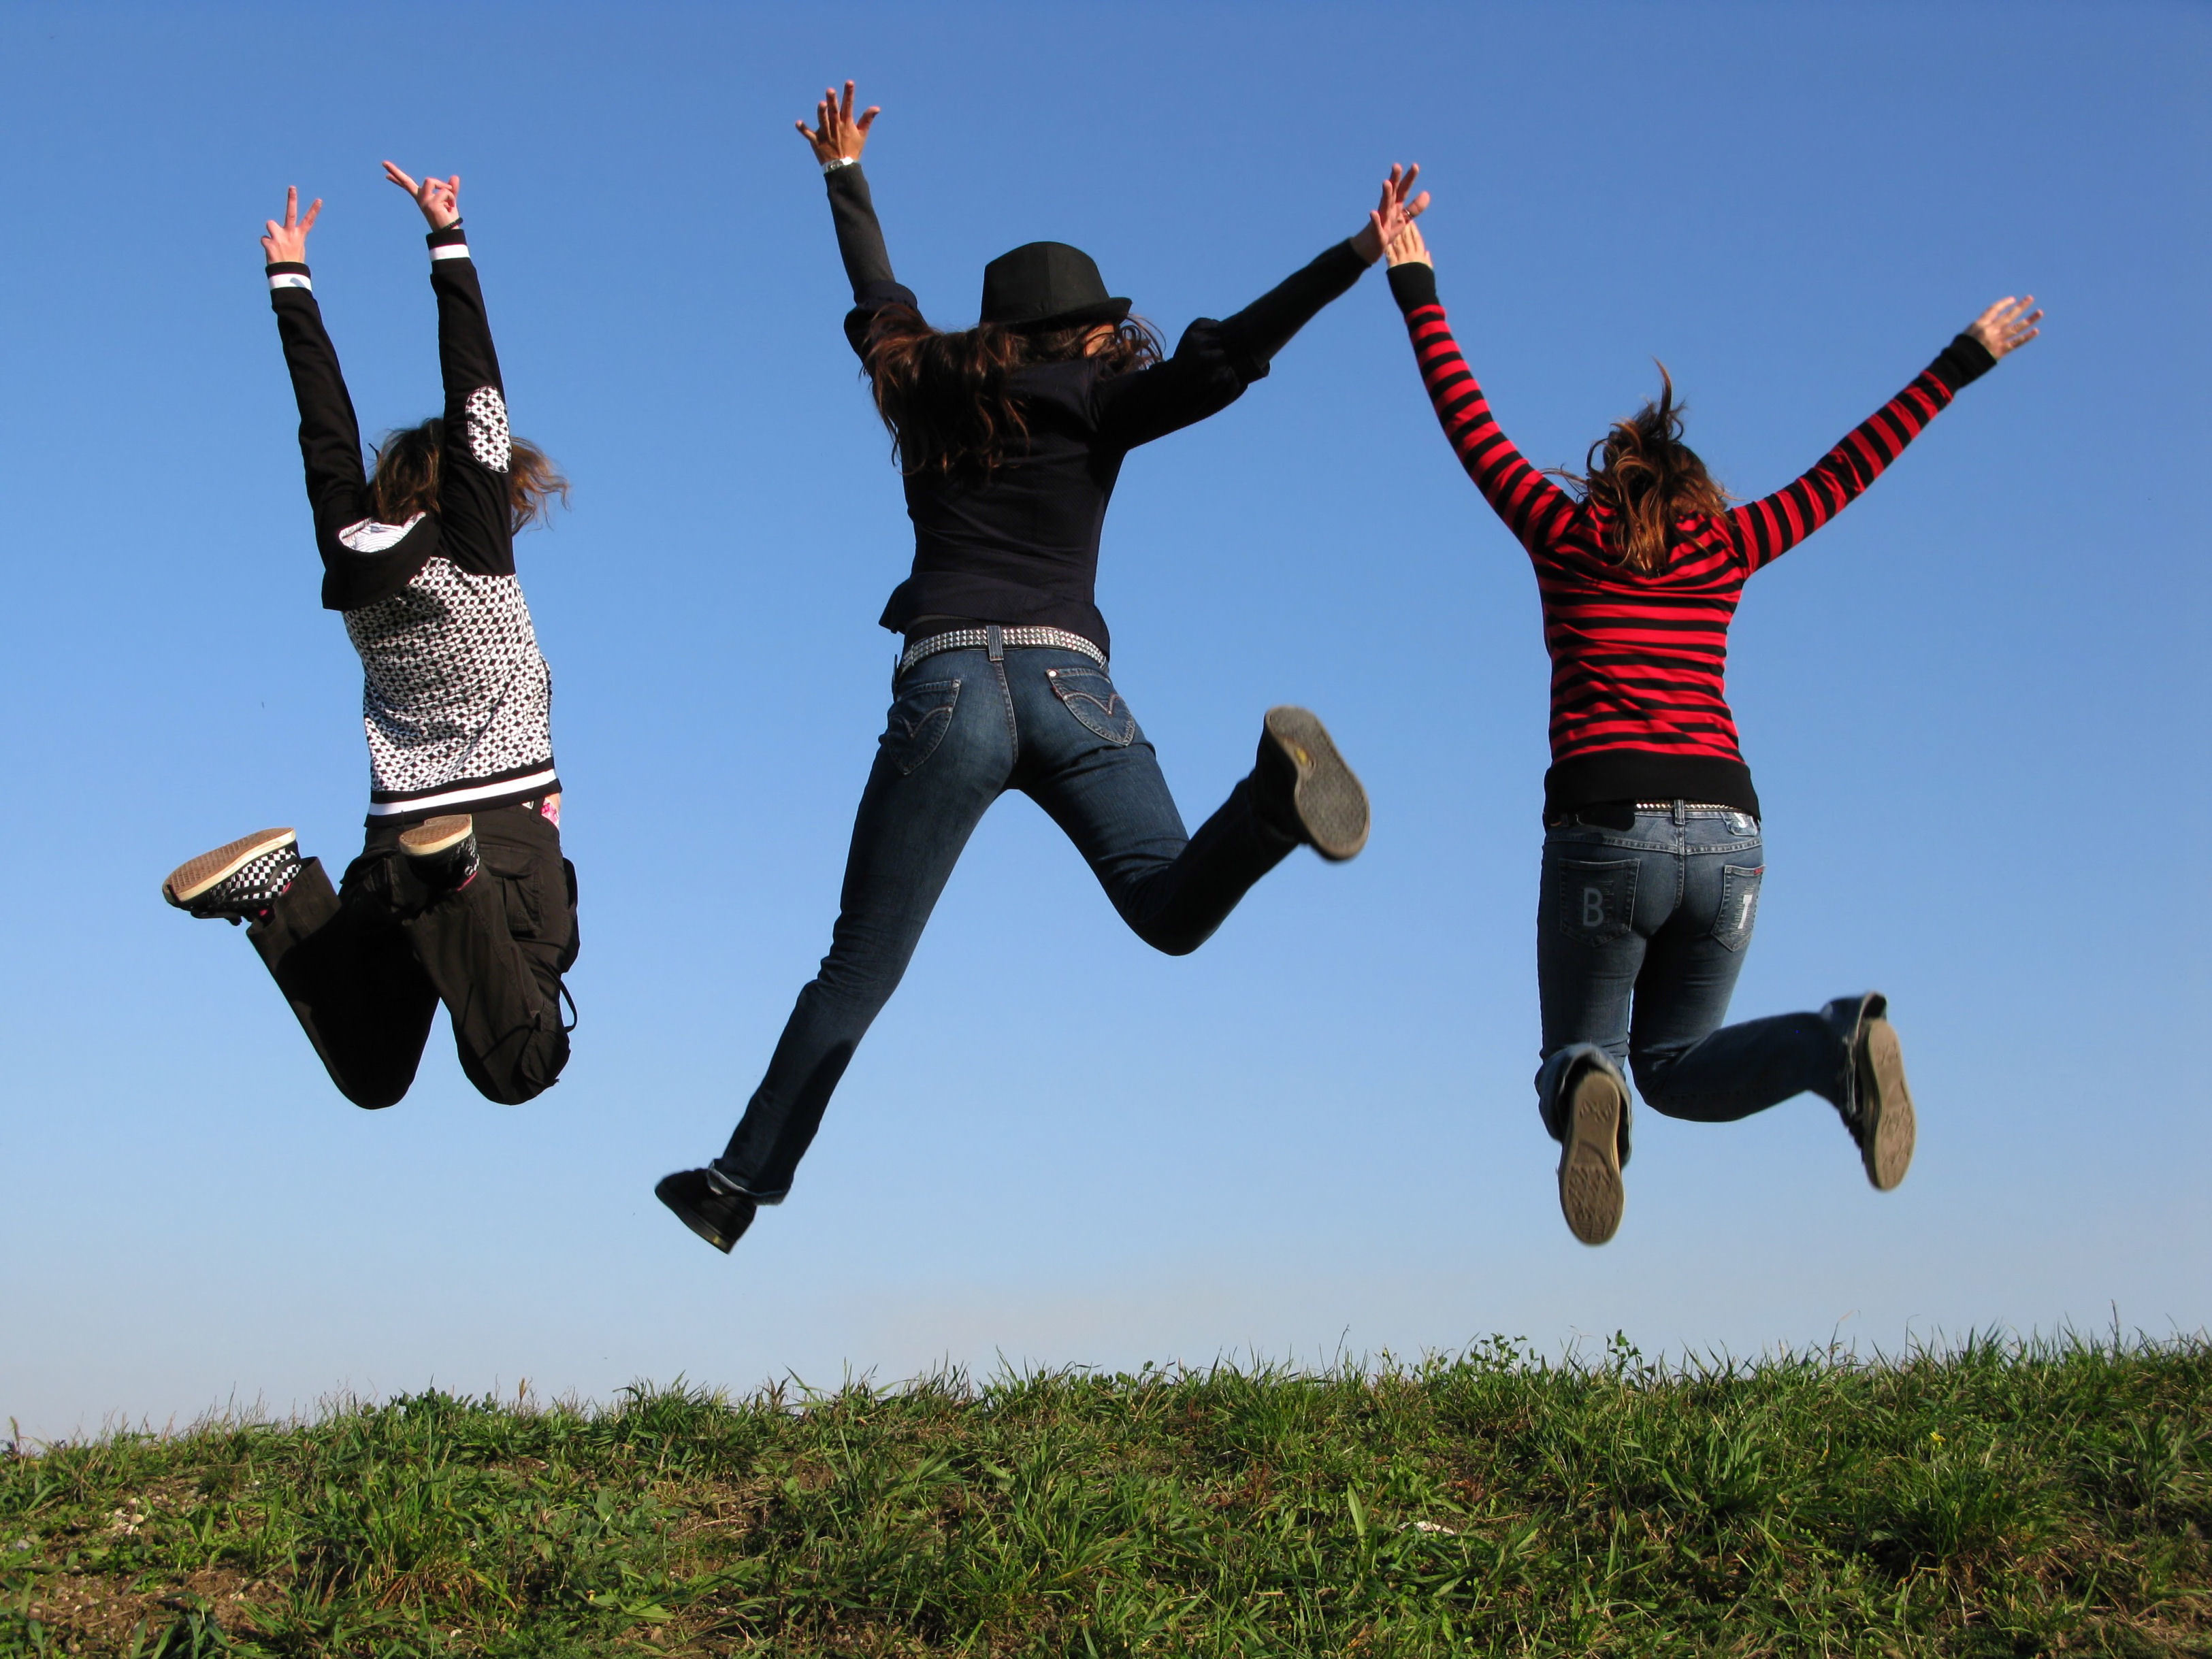 jeans grass jumping Arms HD Wallpaper